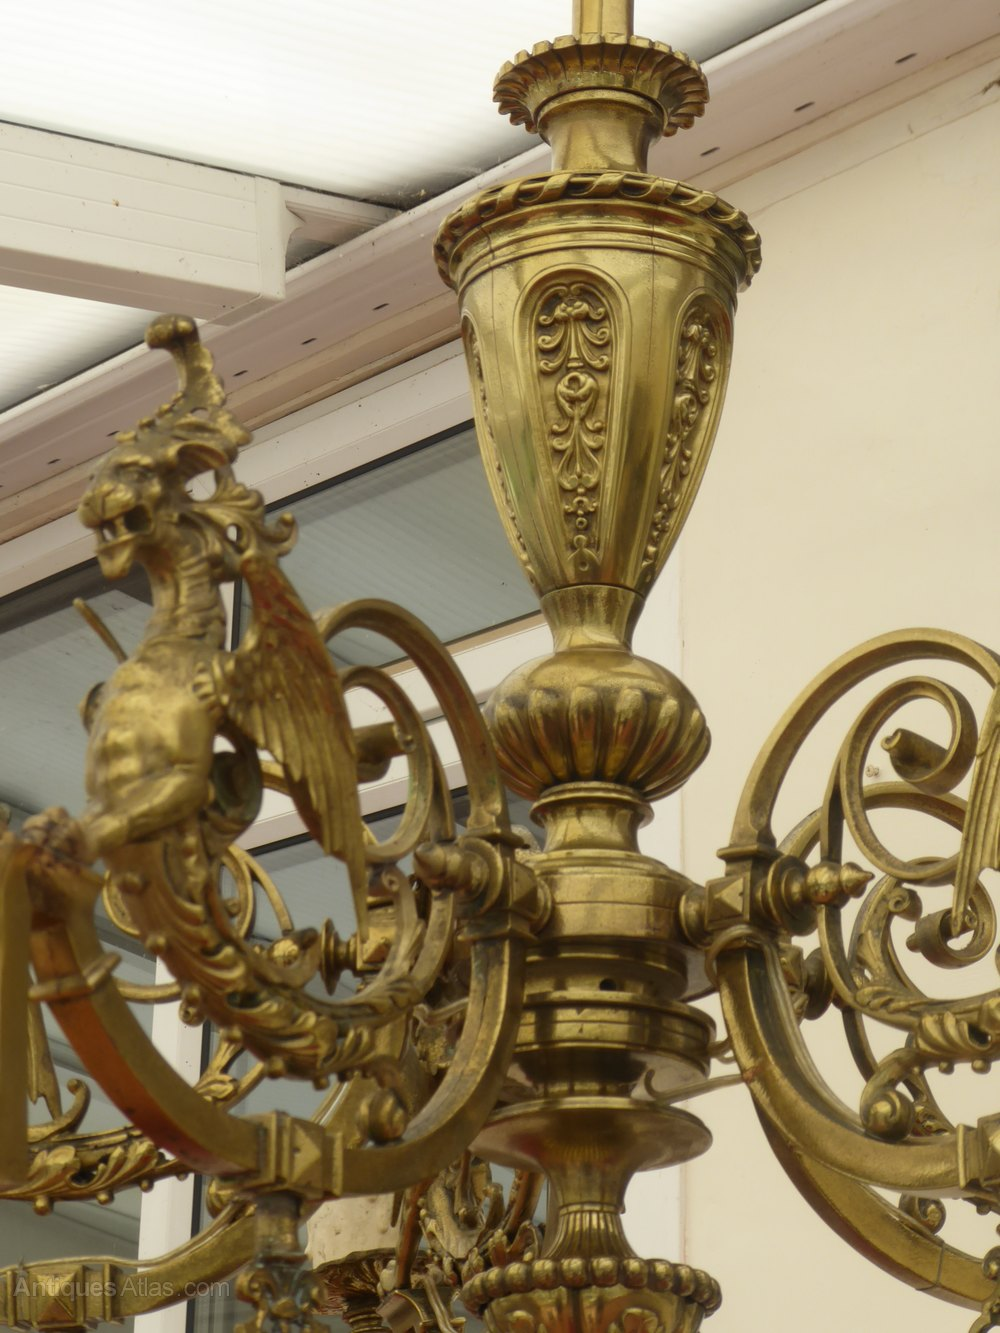 Victorian Ornate Brass Gas Chandelier With Dragons Antique Chandeliers